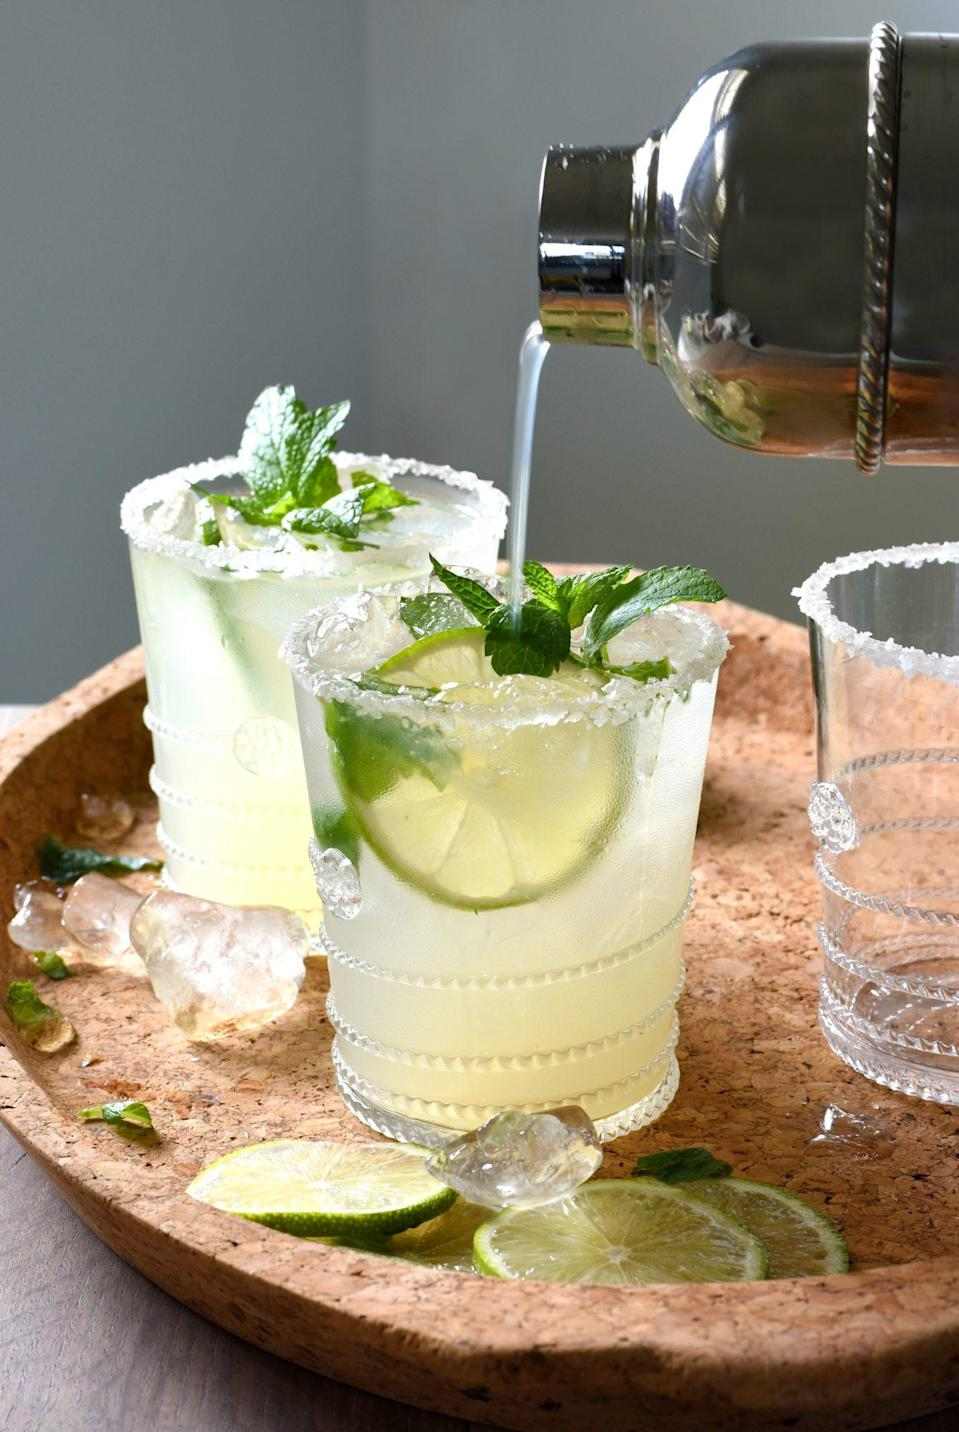 """<p><strong>Recipe: <a href=""""https://www.southernliving.com/recipes/mojitarita-cocktail"""" rel=""""nofollow noopener"""" target=""""_blank"""" data-ylk=""""slk:Mojitarita"""" class=""""link rapid-noclick-resp"""">Mojitarita</a></strong></p> <p>A cross between two epic cocktails, this recipe gets a super fresh kick from mint. We'd recommend topping with Topo Chico's Twist of Lime flavor. </p>"""